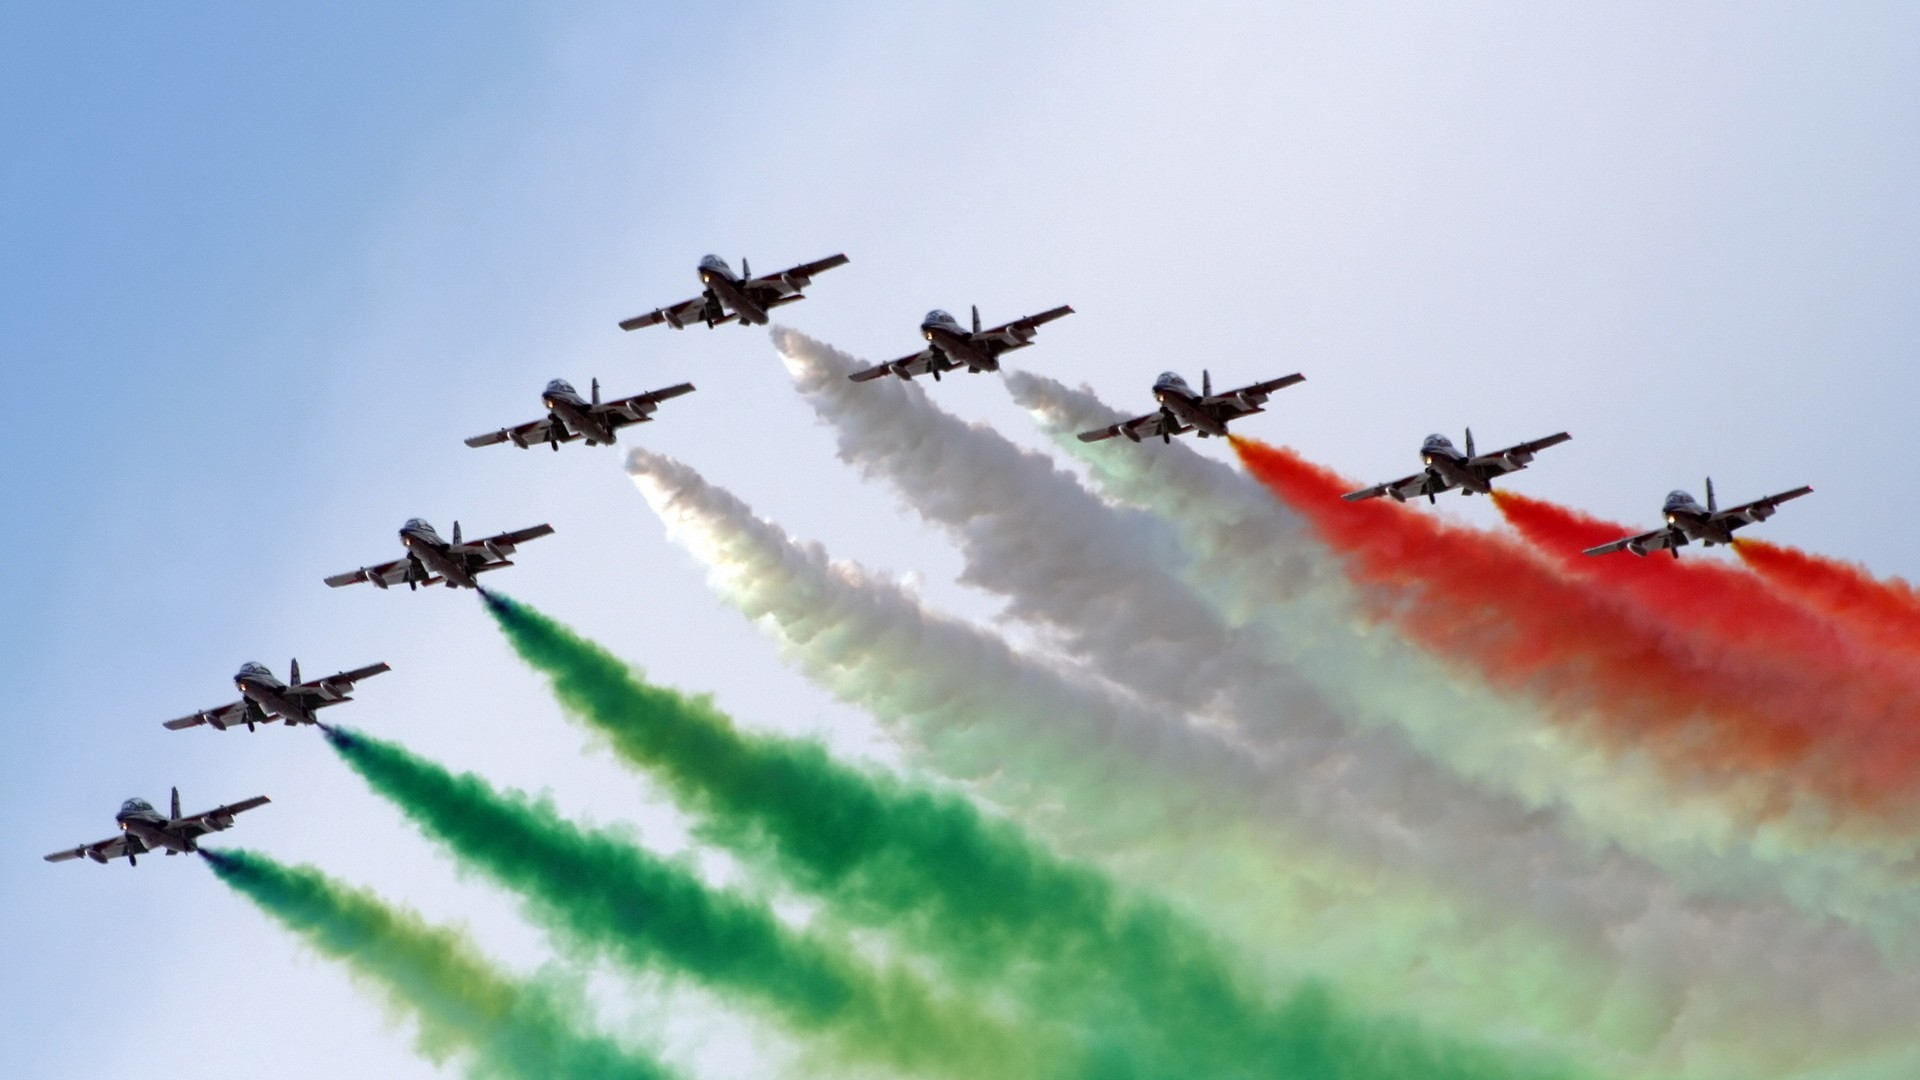 aviation skyscapes Frecce Tricolori HD Wallpaper